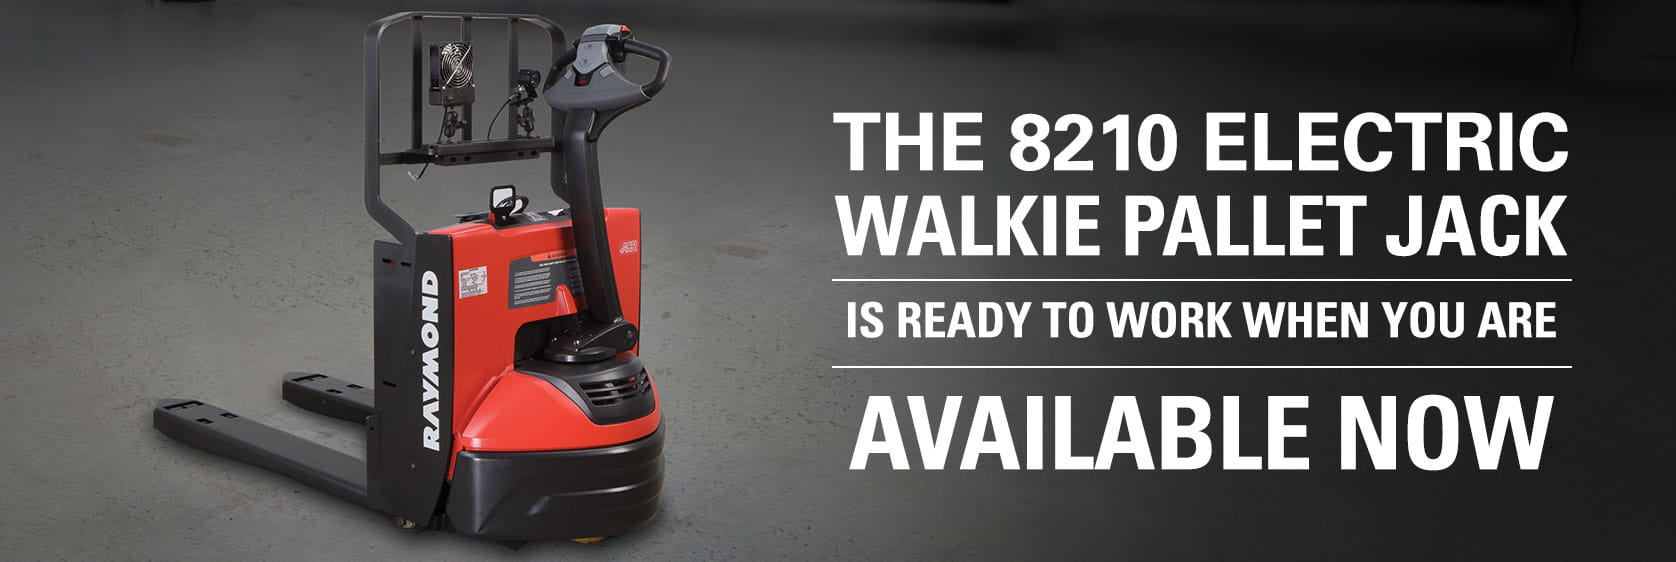 8210 electric walkie pallet jack